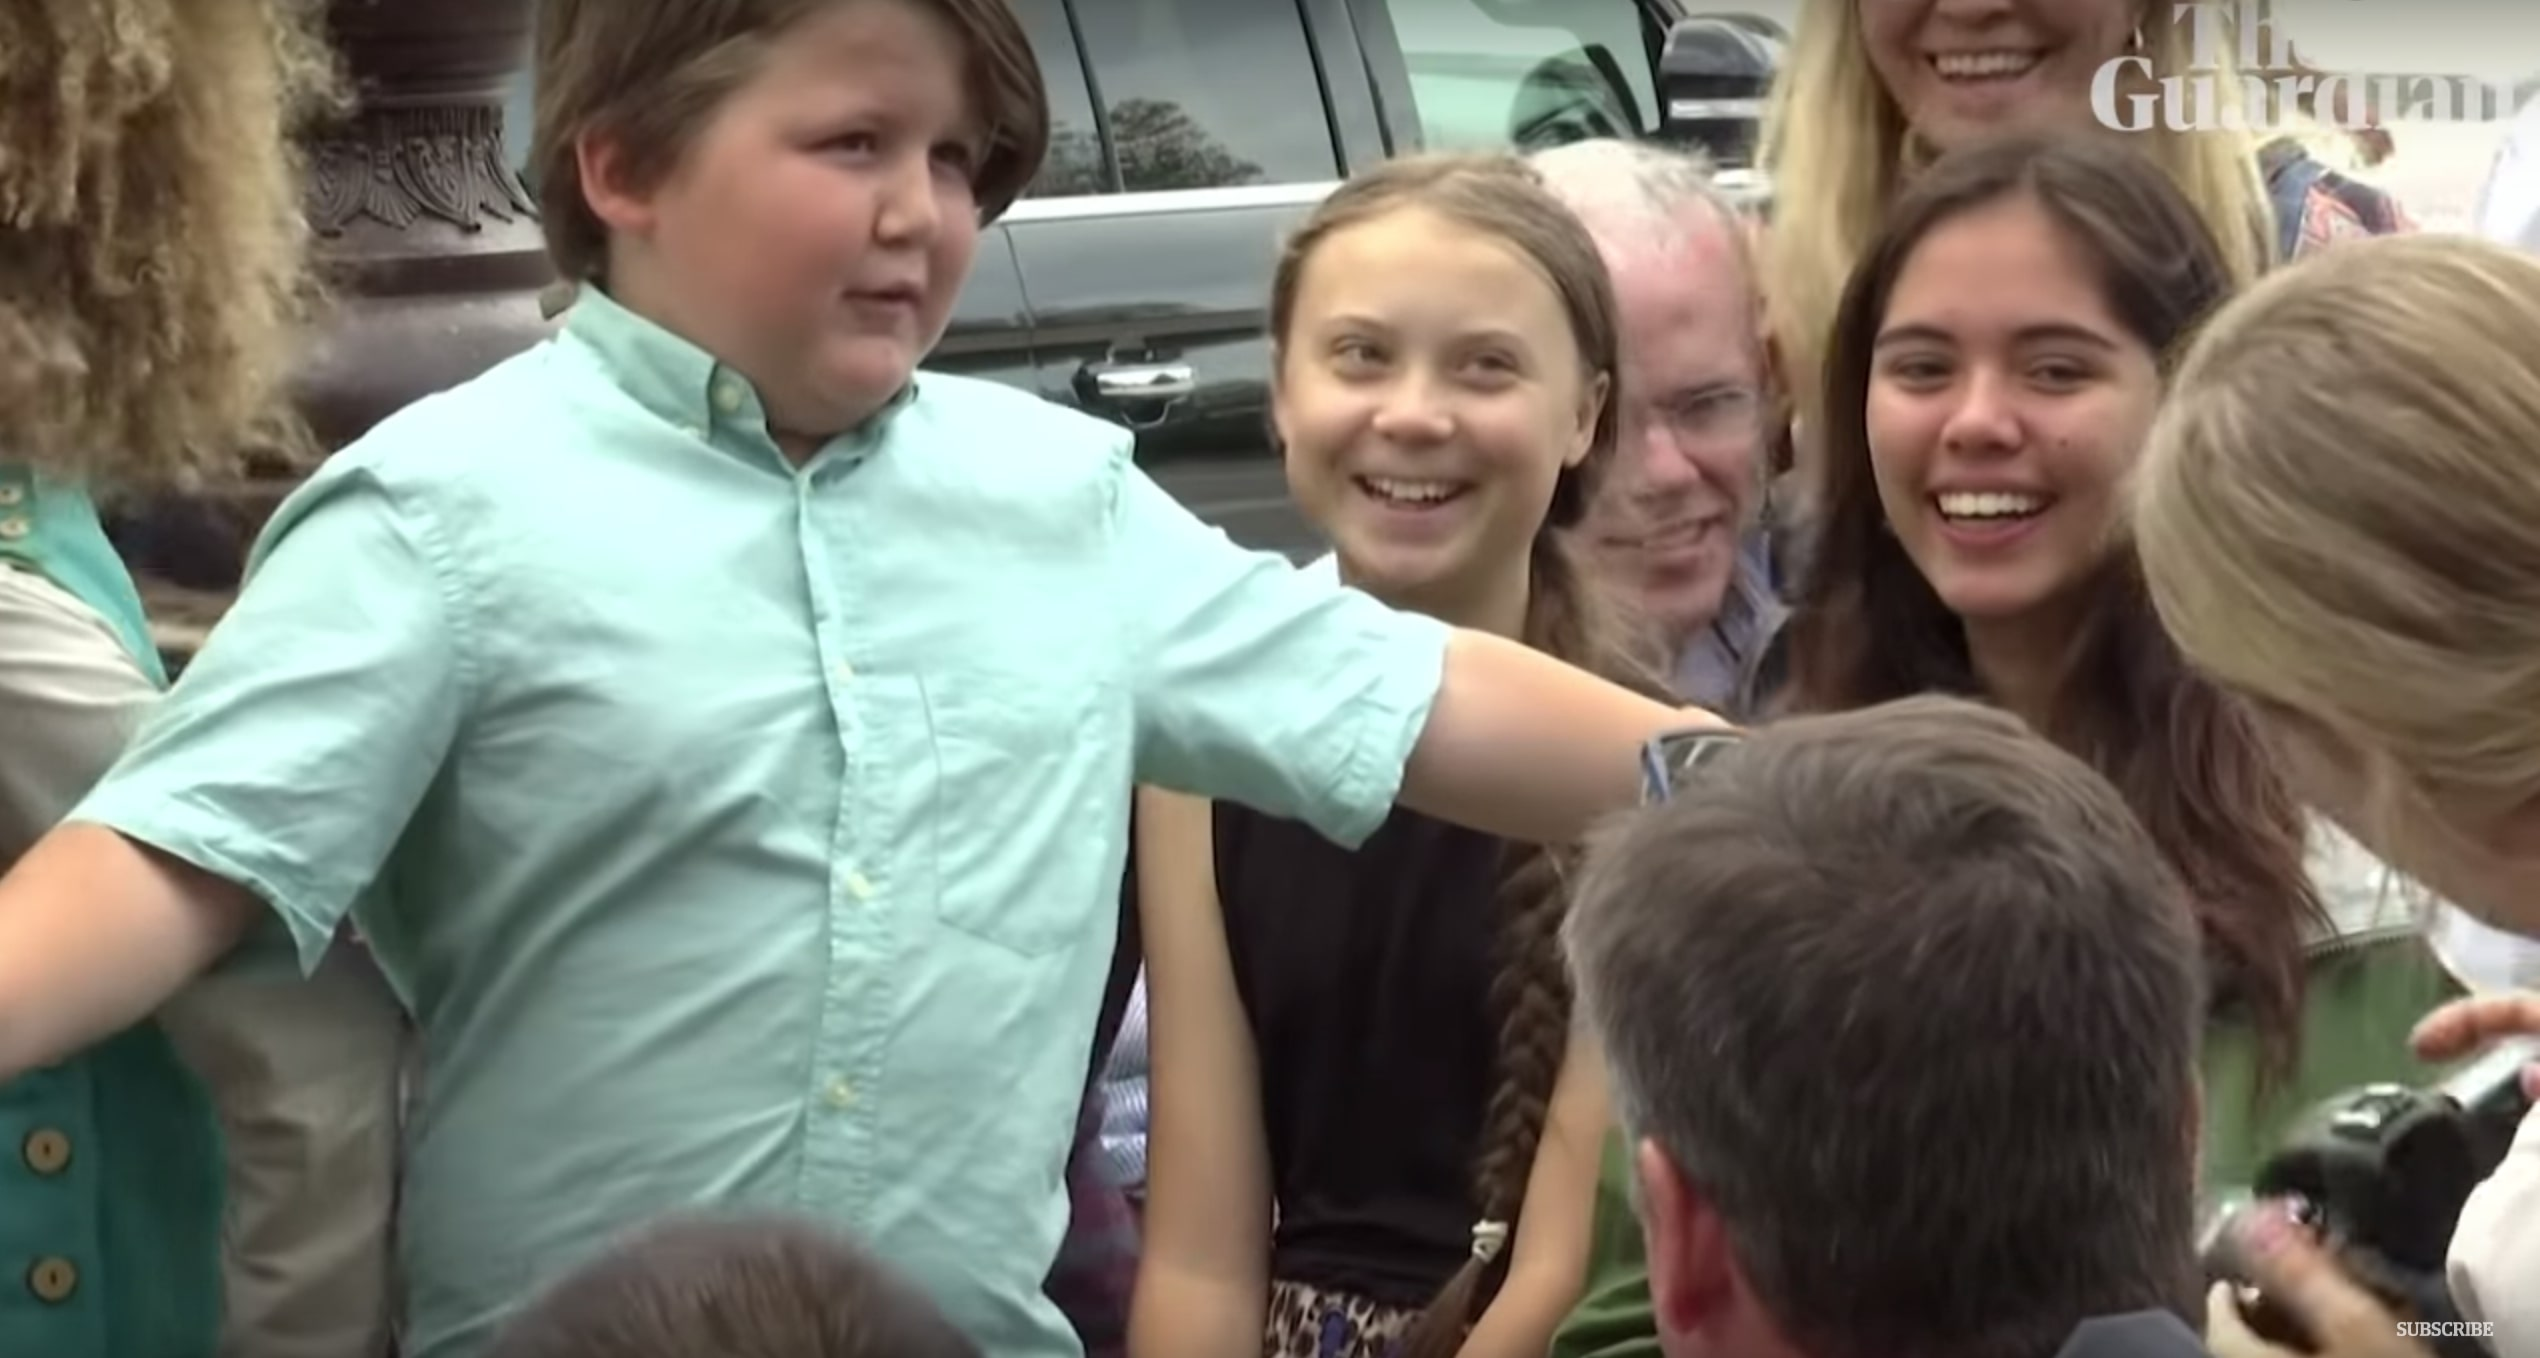 People Can't Get Enough of This Video of a Boy Shielding Activist Greta Thunberg from Capitol Hill Cameras